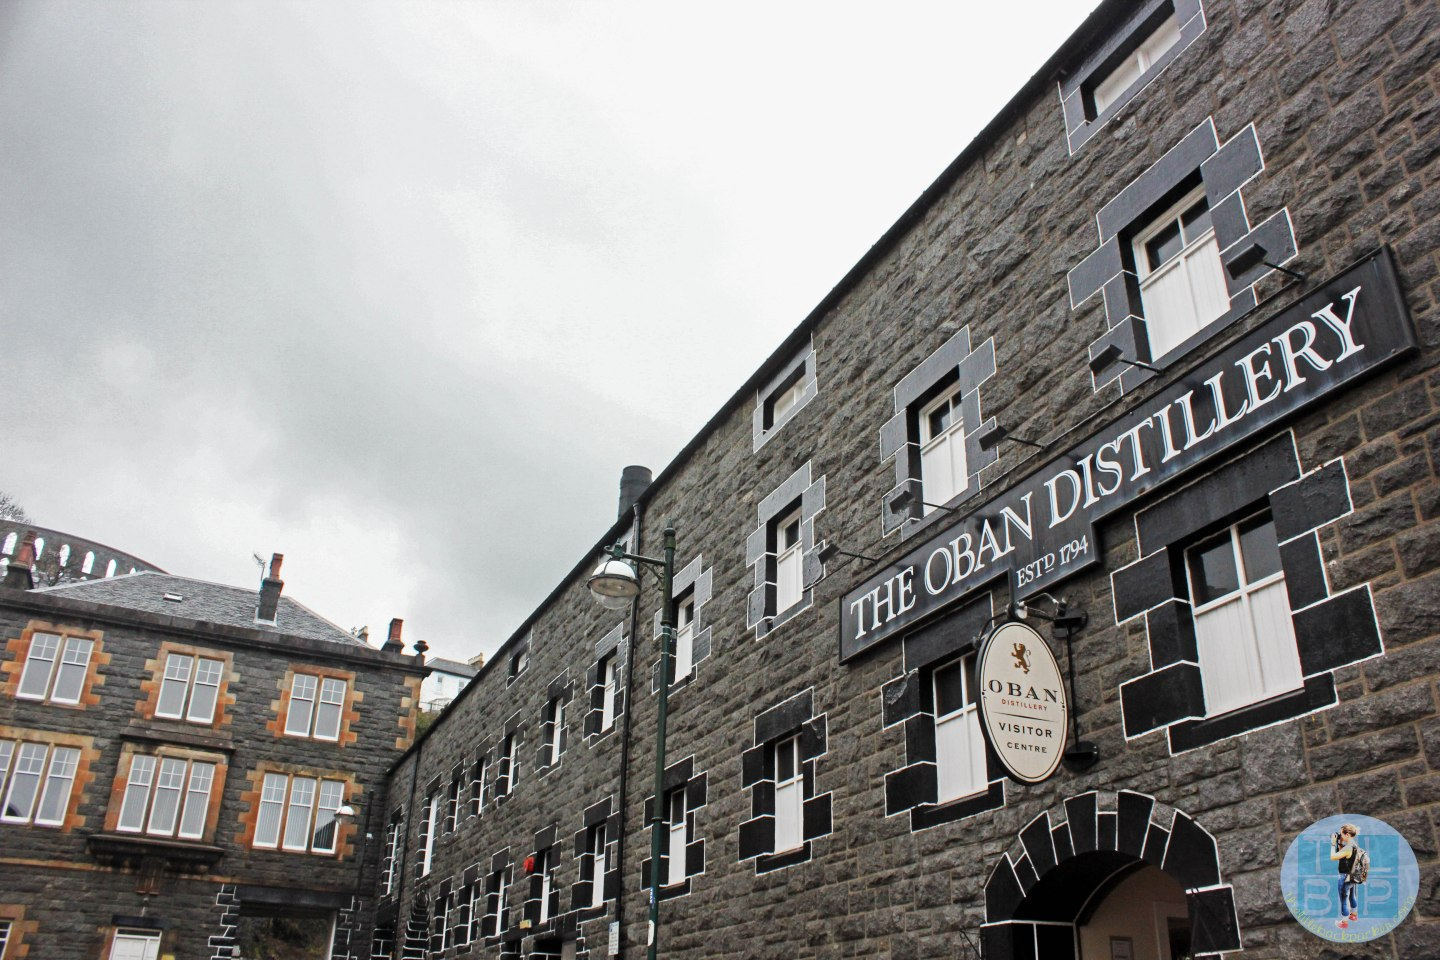 Oban Distillery Tour Review